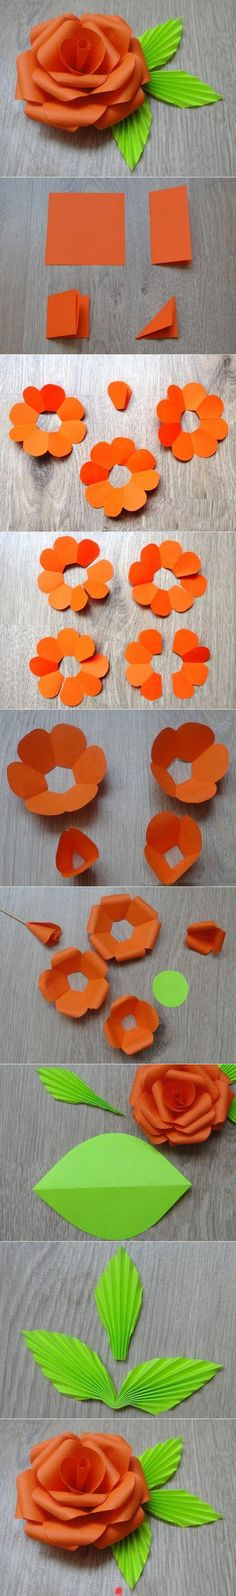 Mar 2019 - Paper flowers - tutorials and inspiration. See more ideas about Paper flowers, Flower crafts and Diy flowers. Paper Flower Tutorial, Paper Flowers Diy, Handmade Flowers, Flower Crafts, Fabric Flowers, Flower Diy, Rose Tutorial, Rose Flowers, Craft Flowers